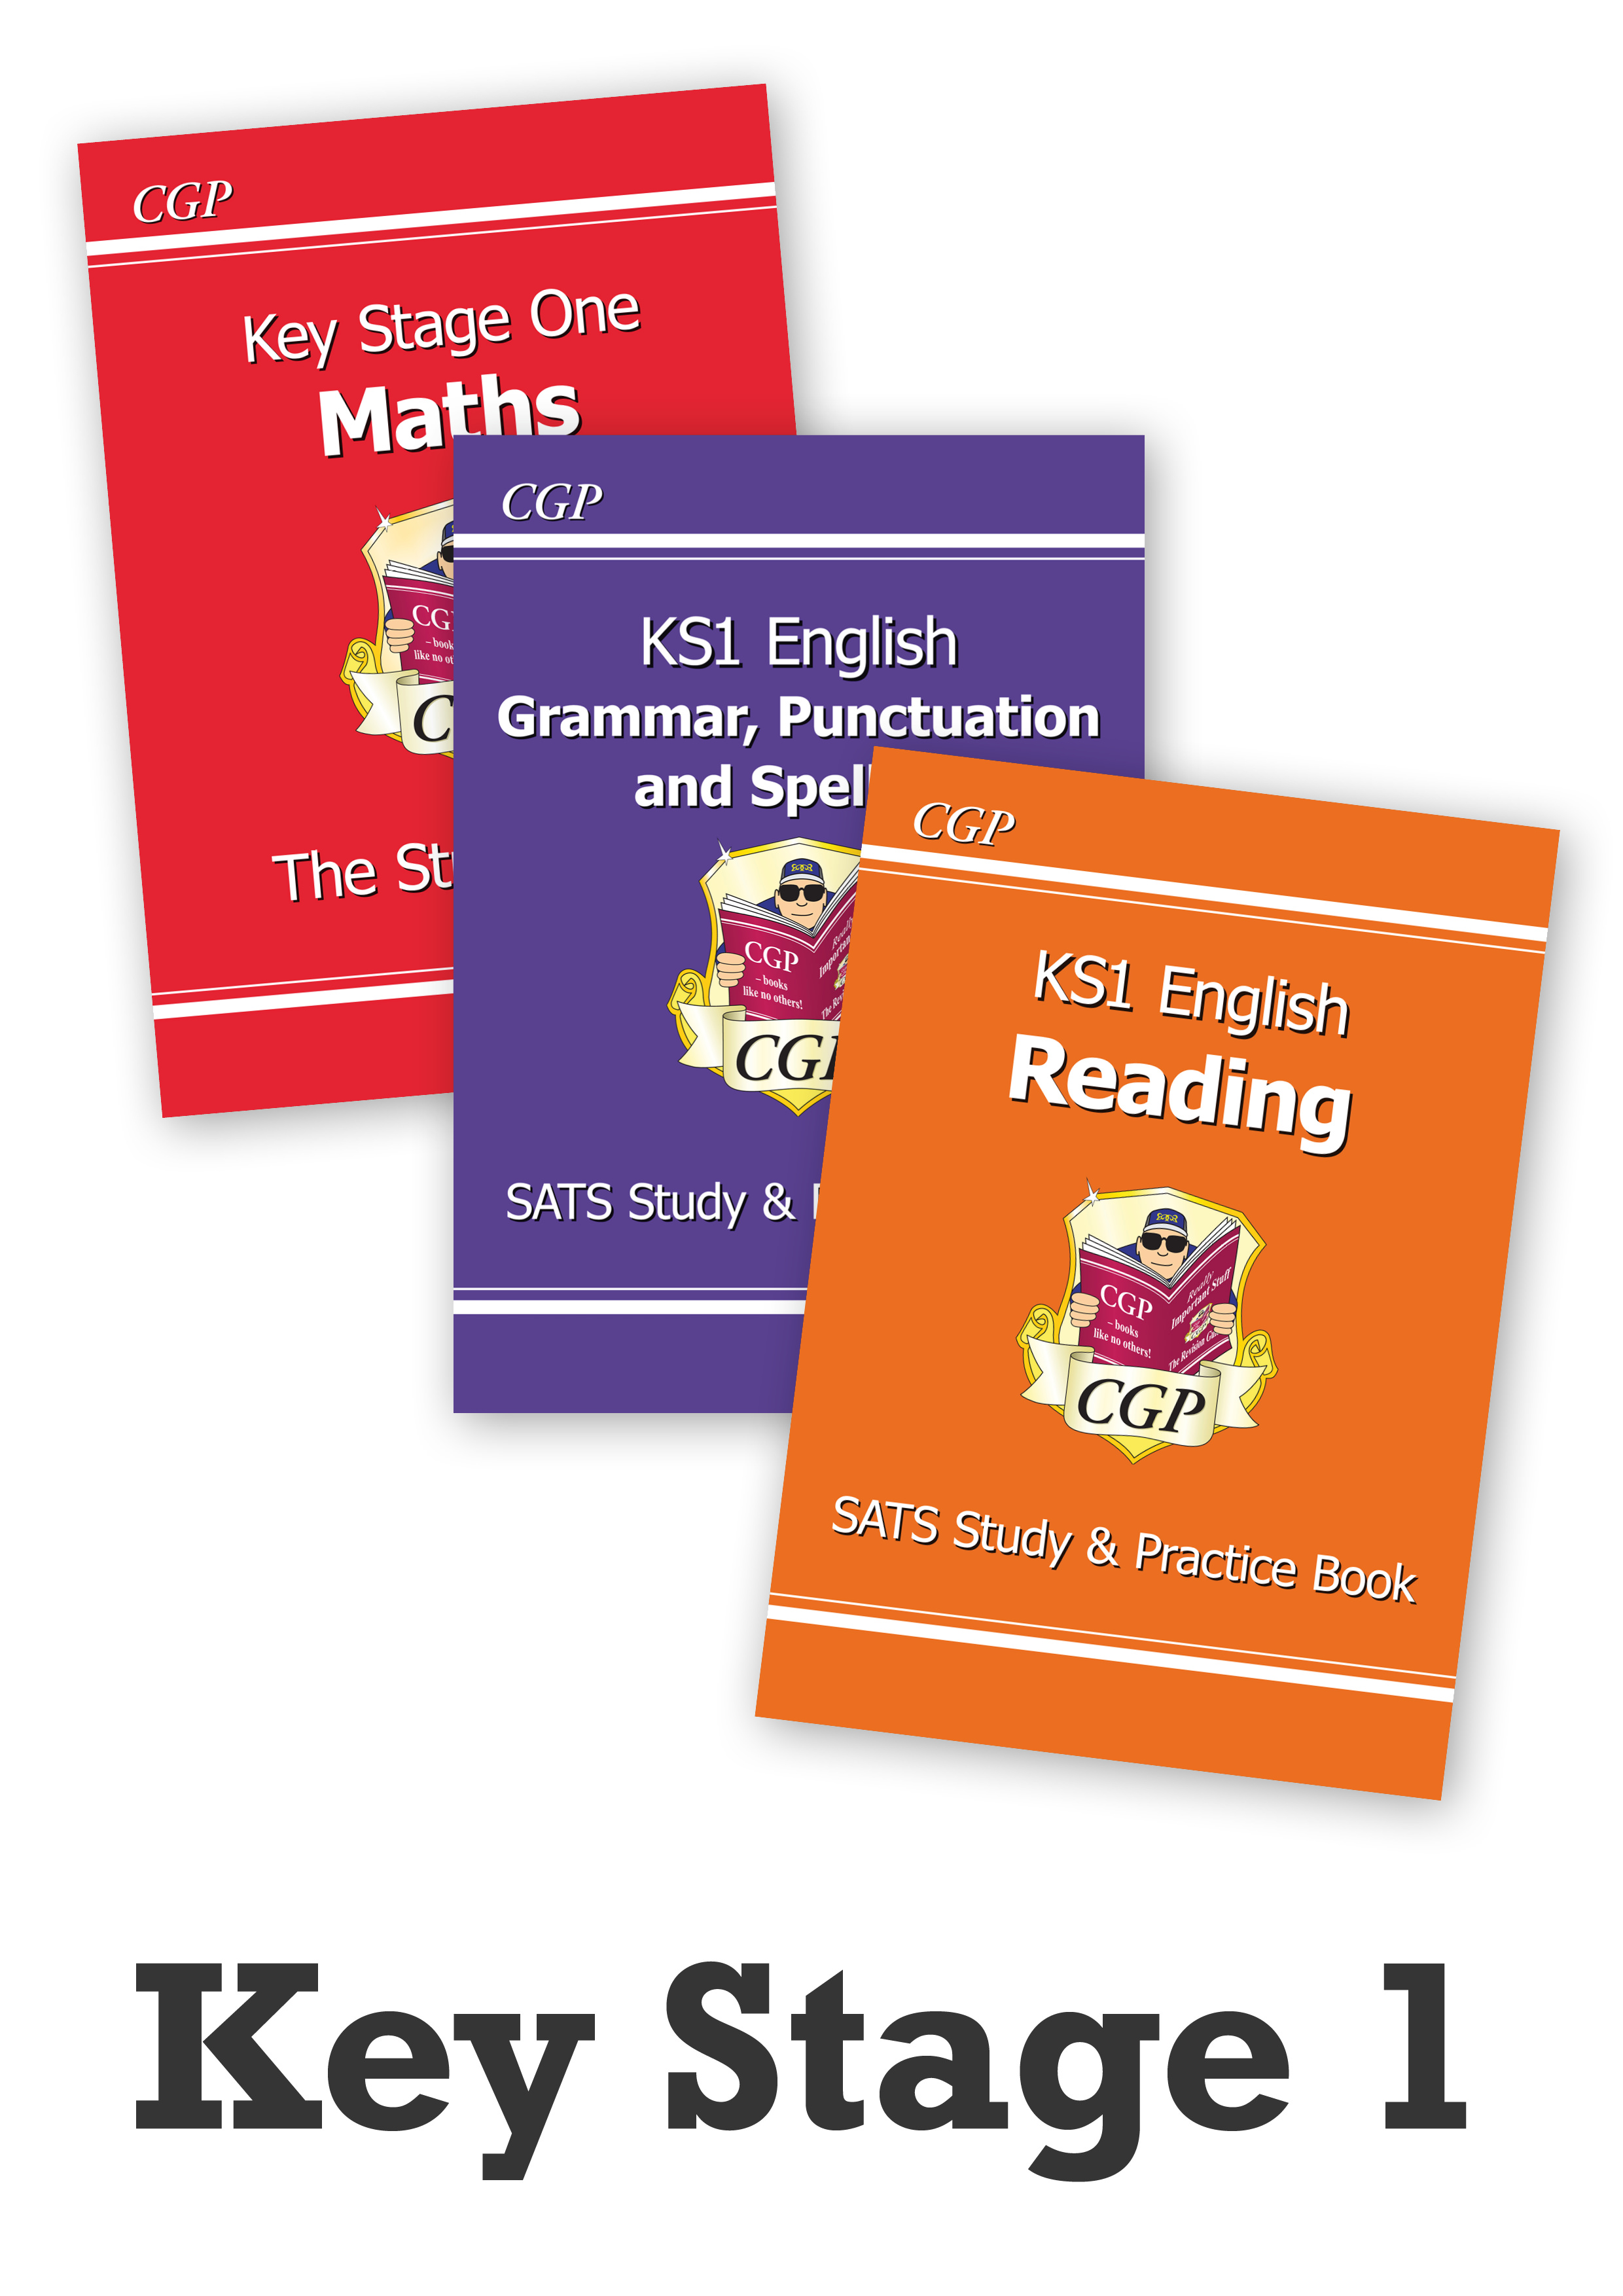 EMSTBB11 - Key Stage One Home Learning Essentials: Study Book Bundle - Ages 5-7